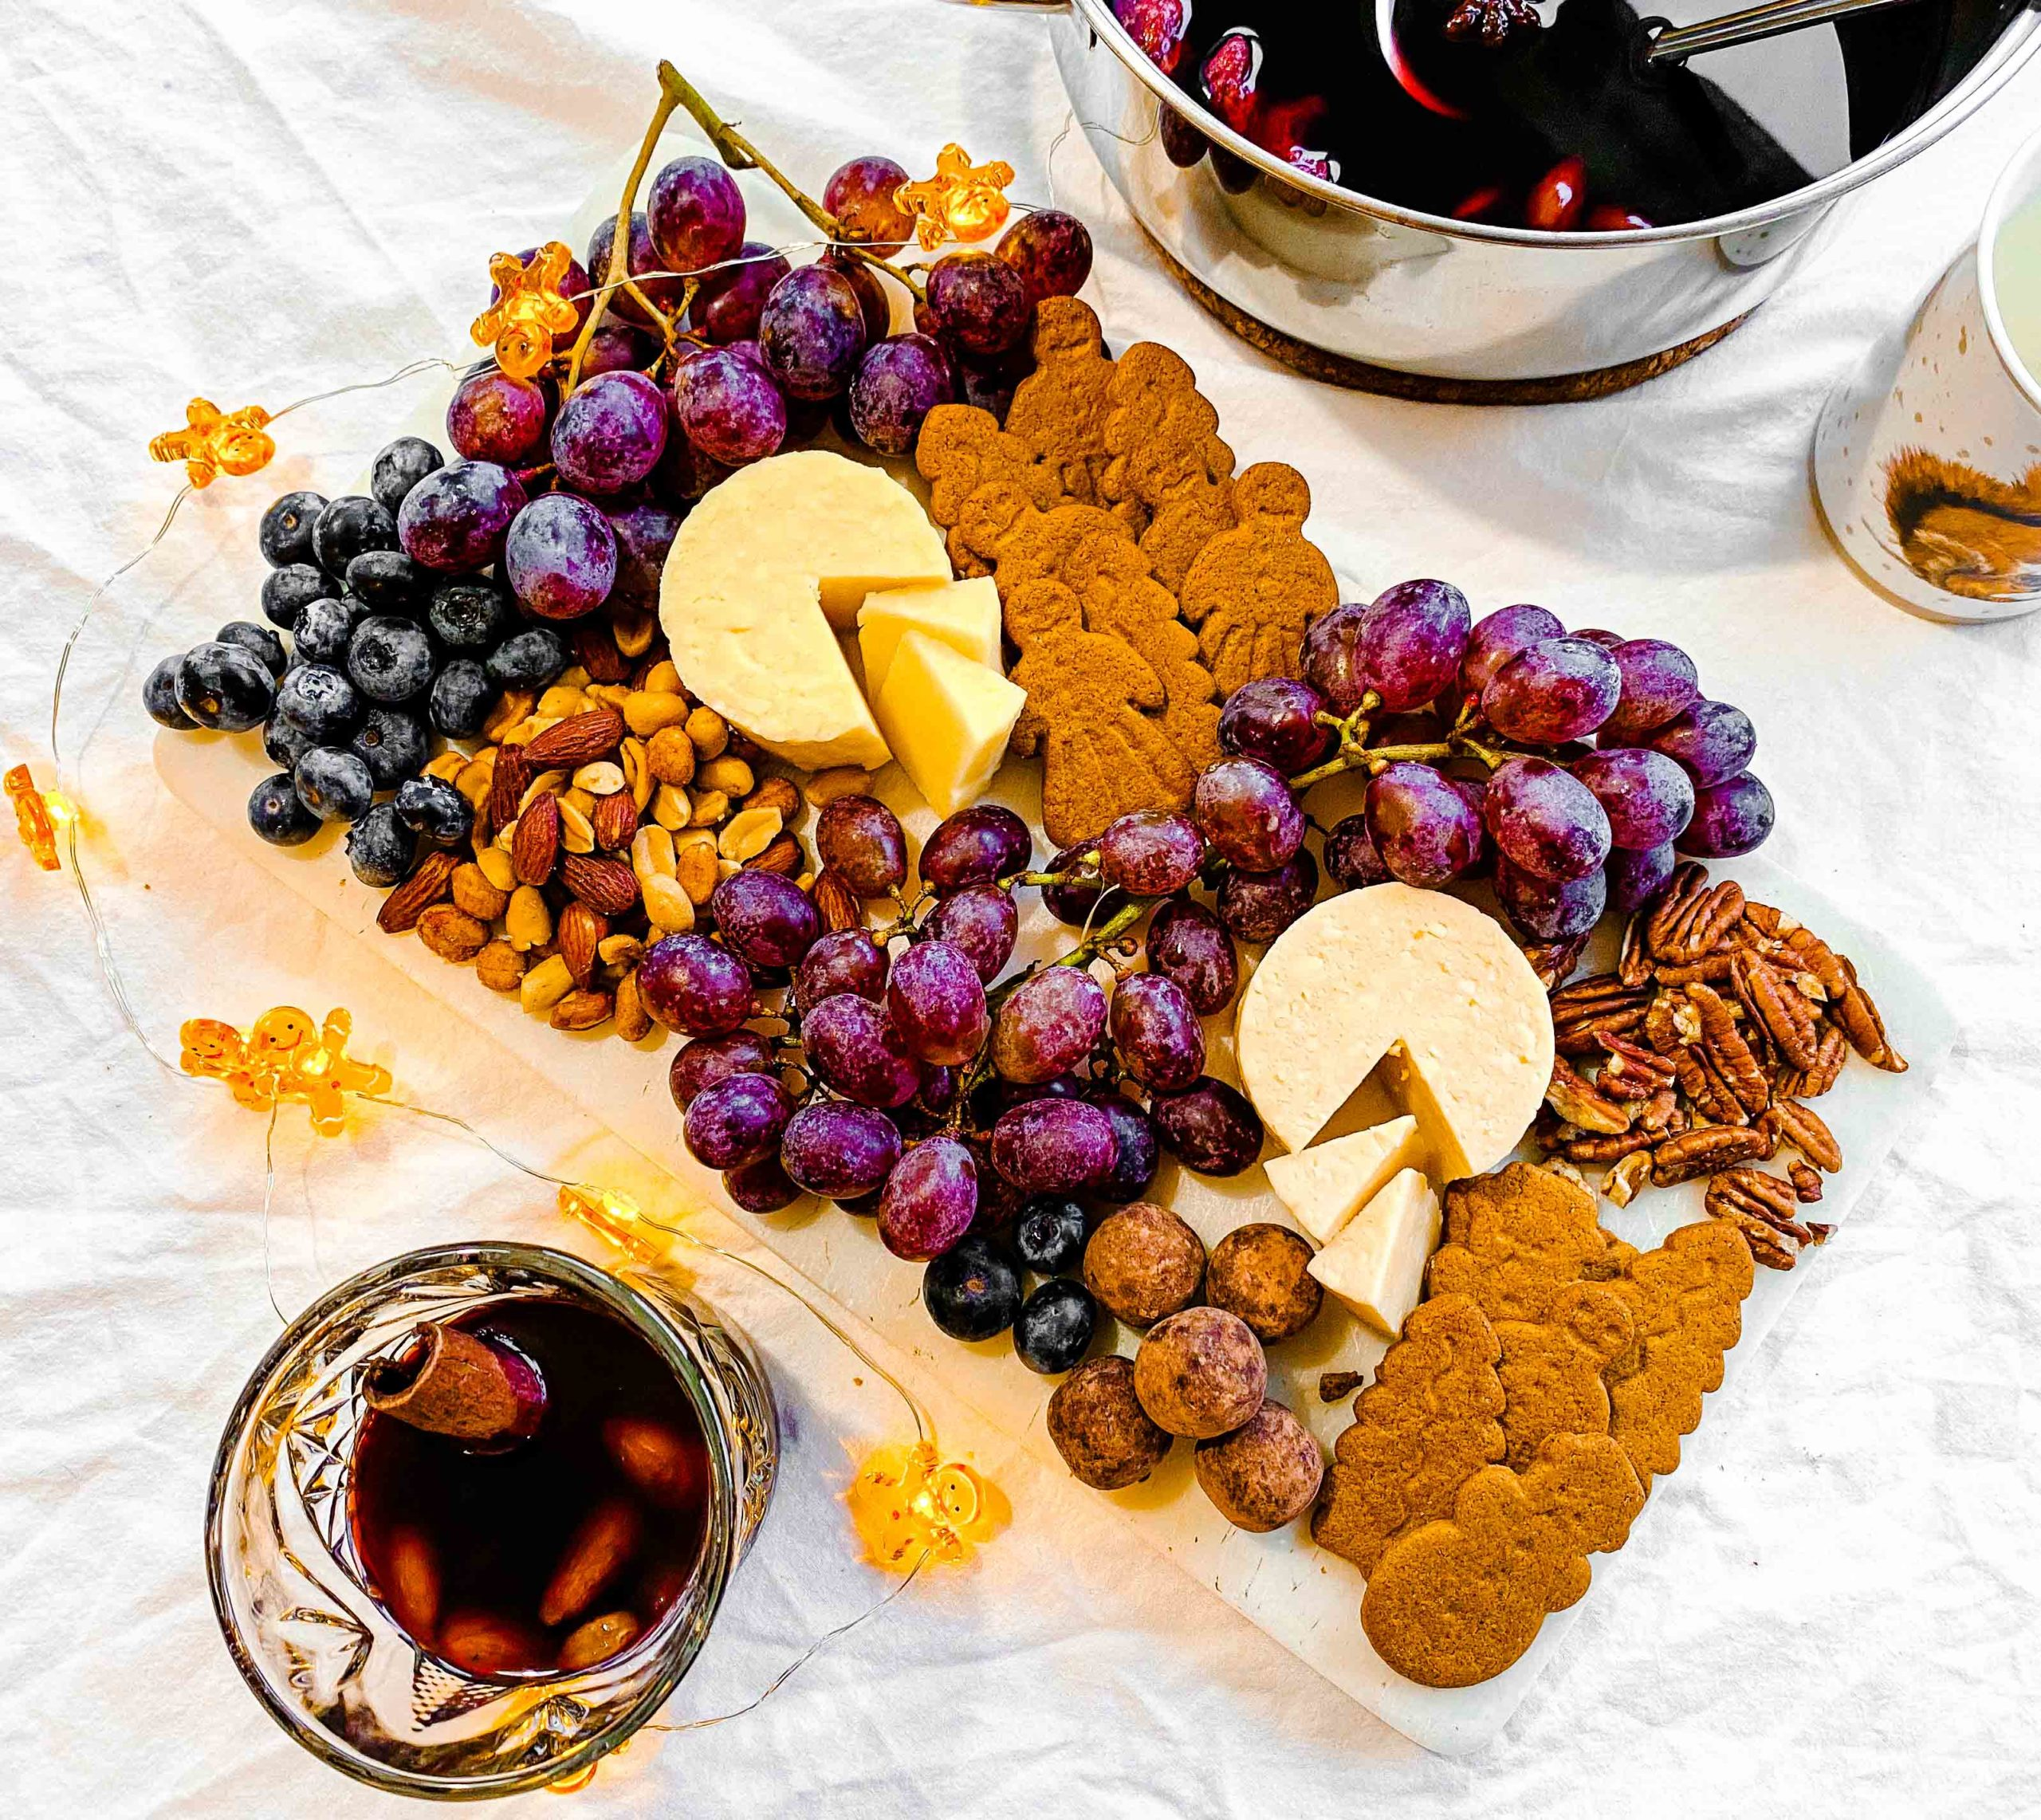 Mulled Wine Recipe: Which wine to use and what food to pair with